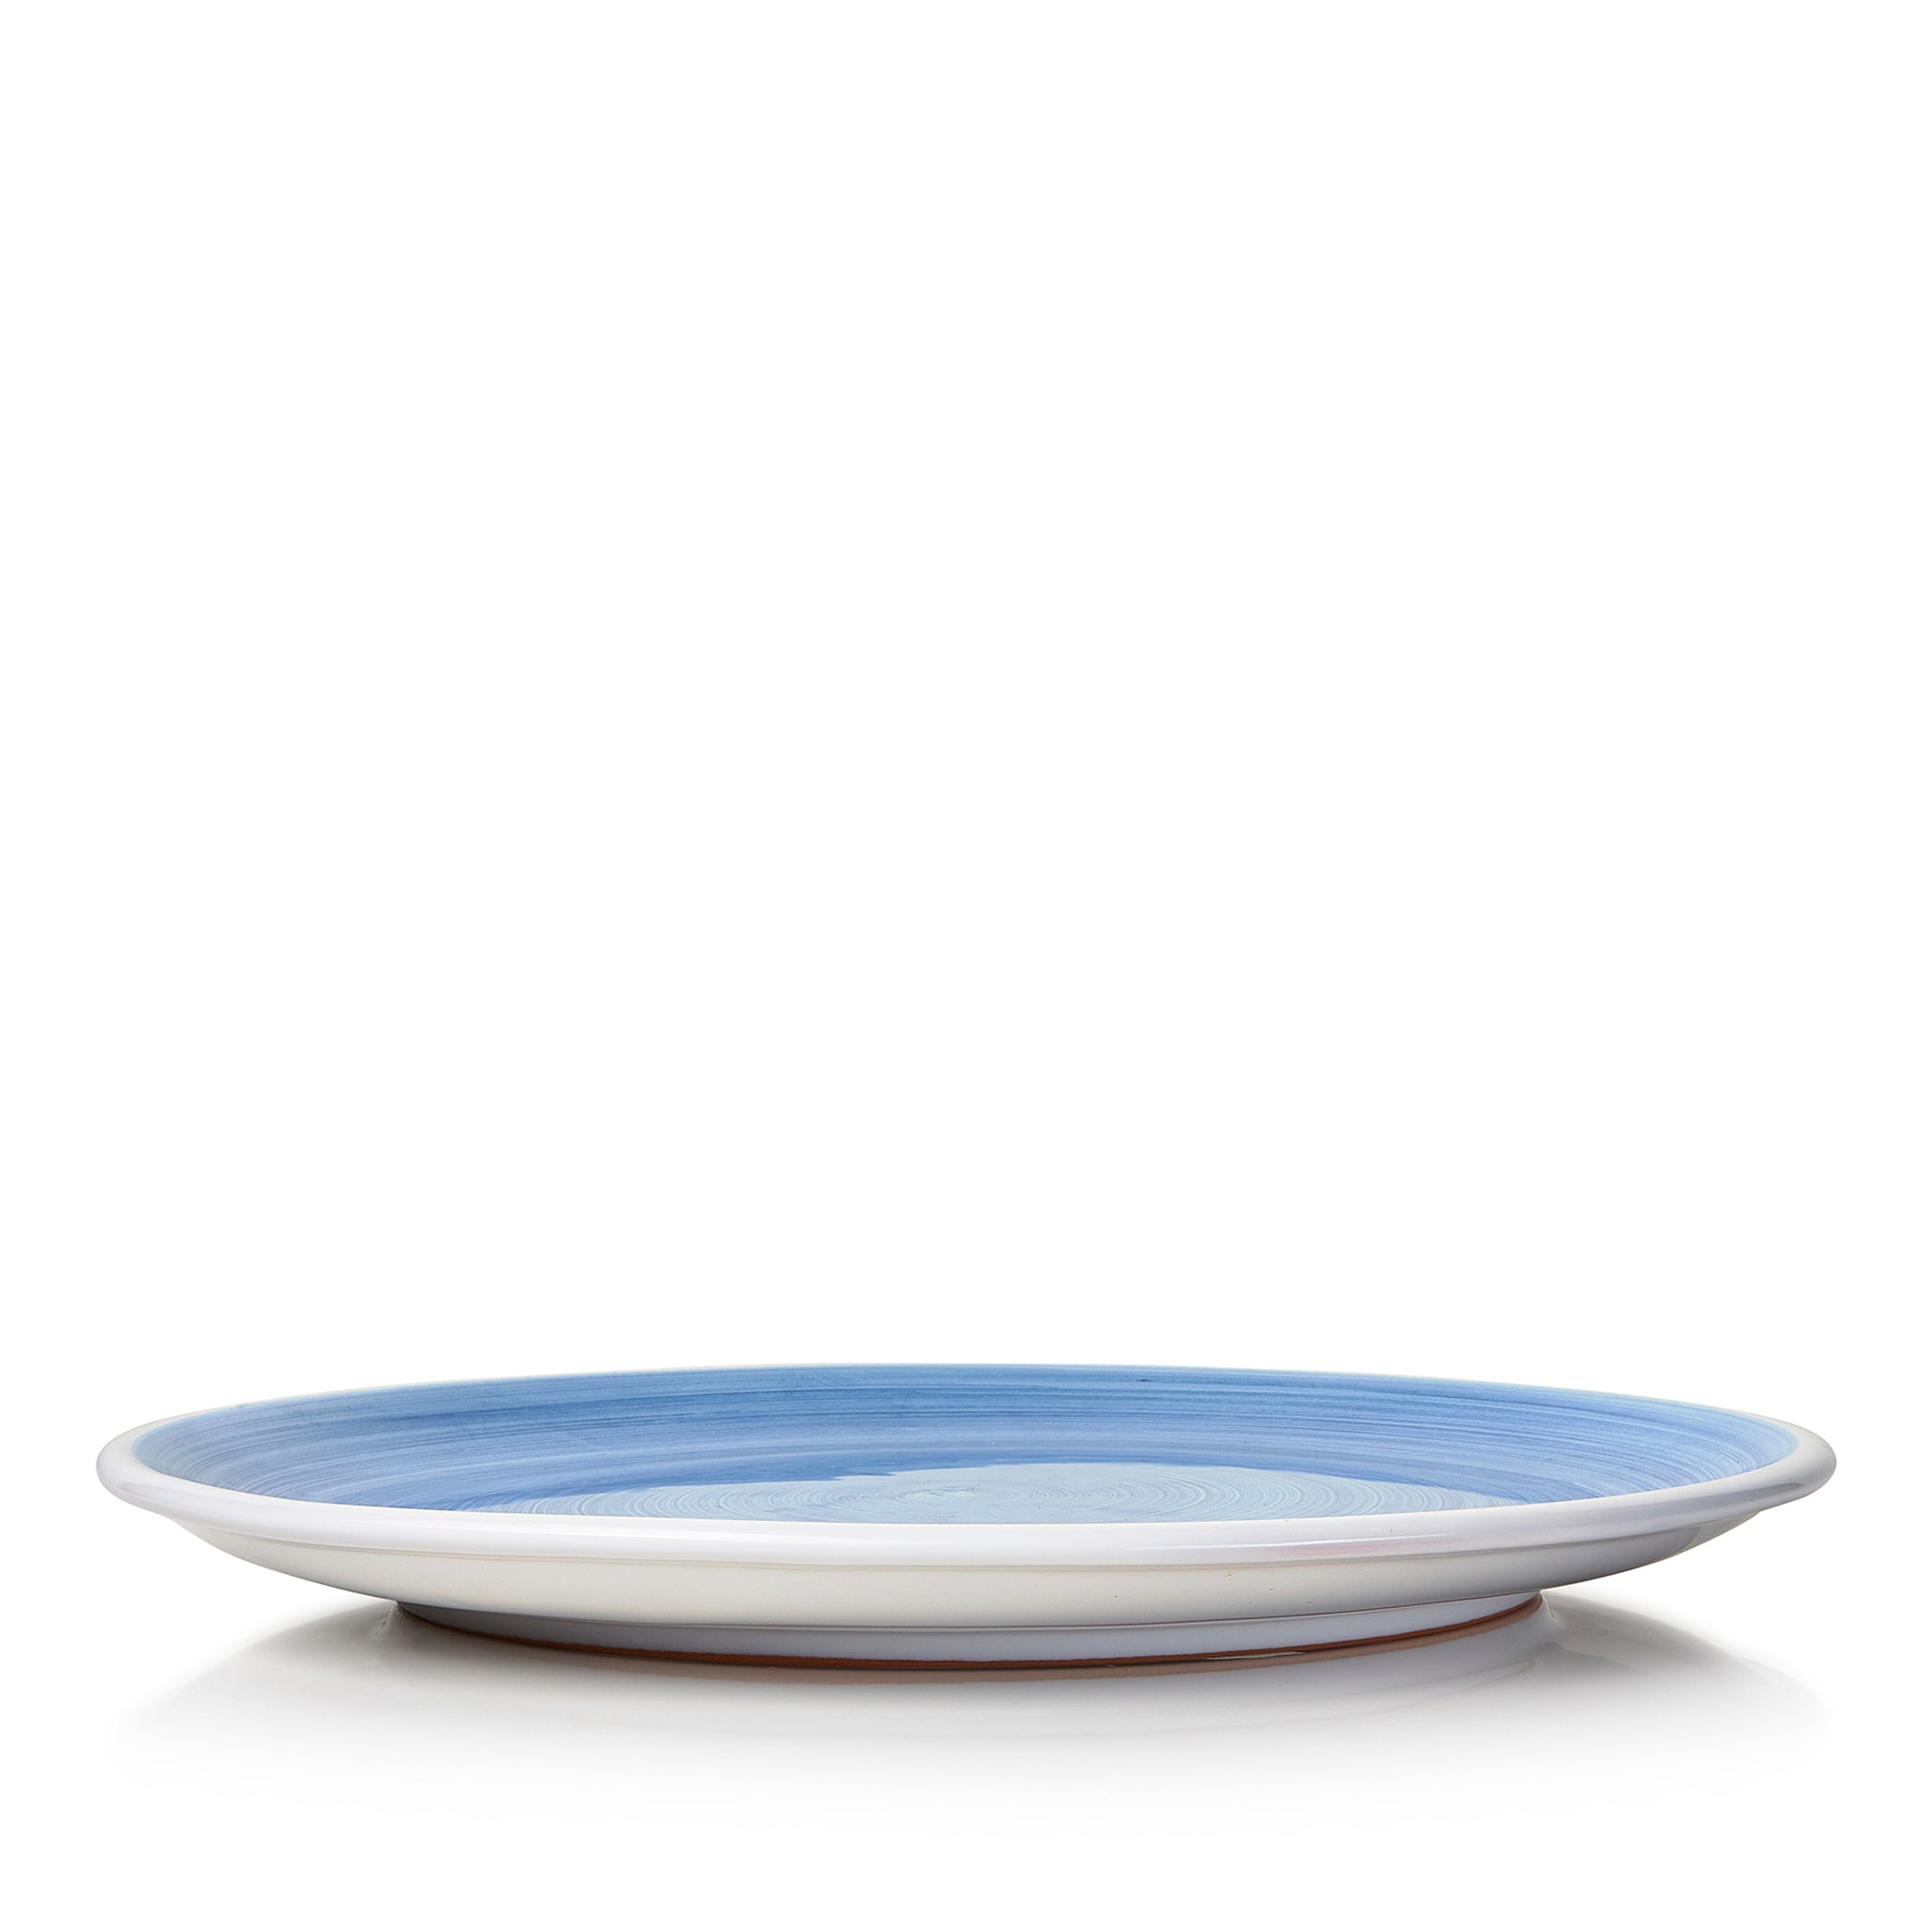 S&B 'Brushed' Ceramic Dinner Plate in Light Blue, 28cm